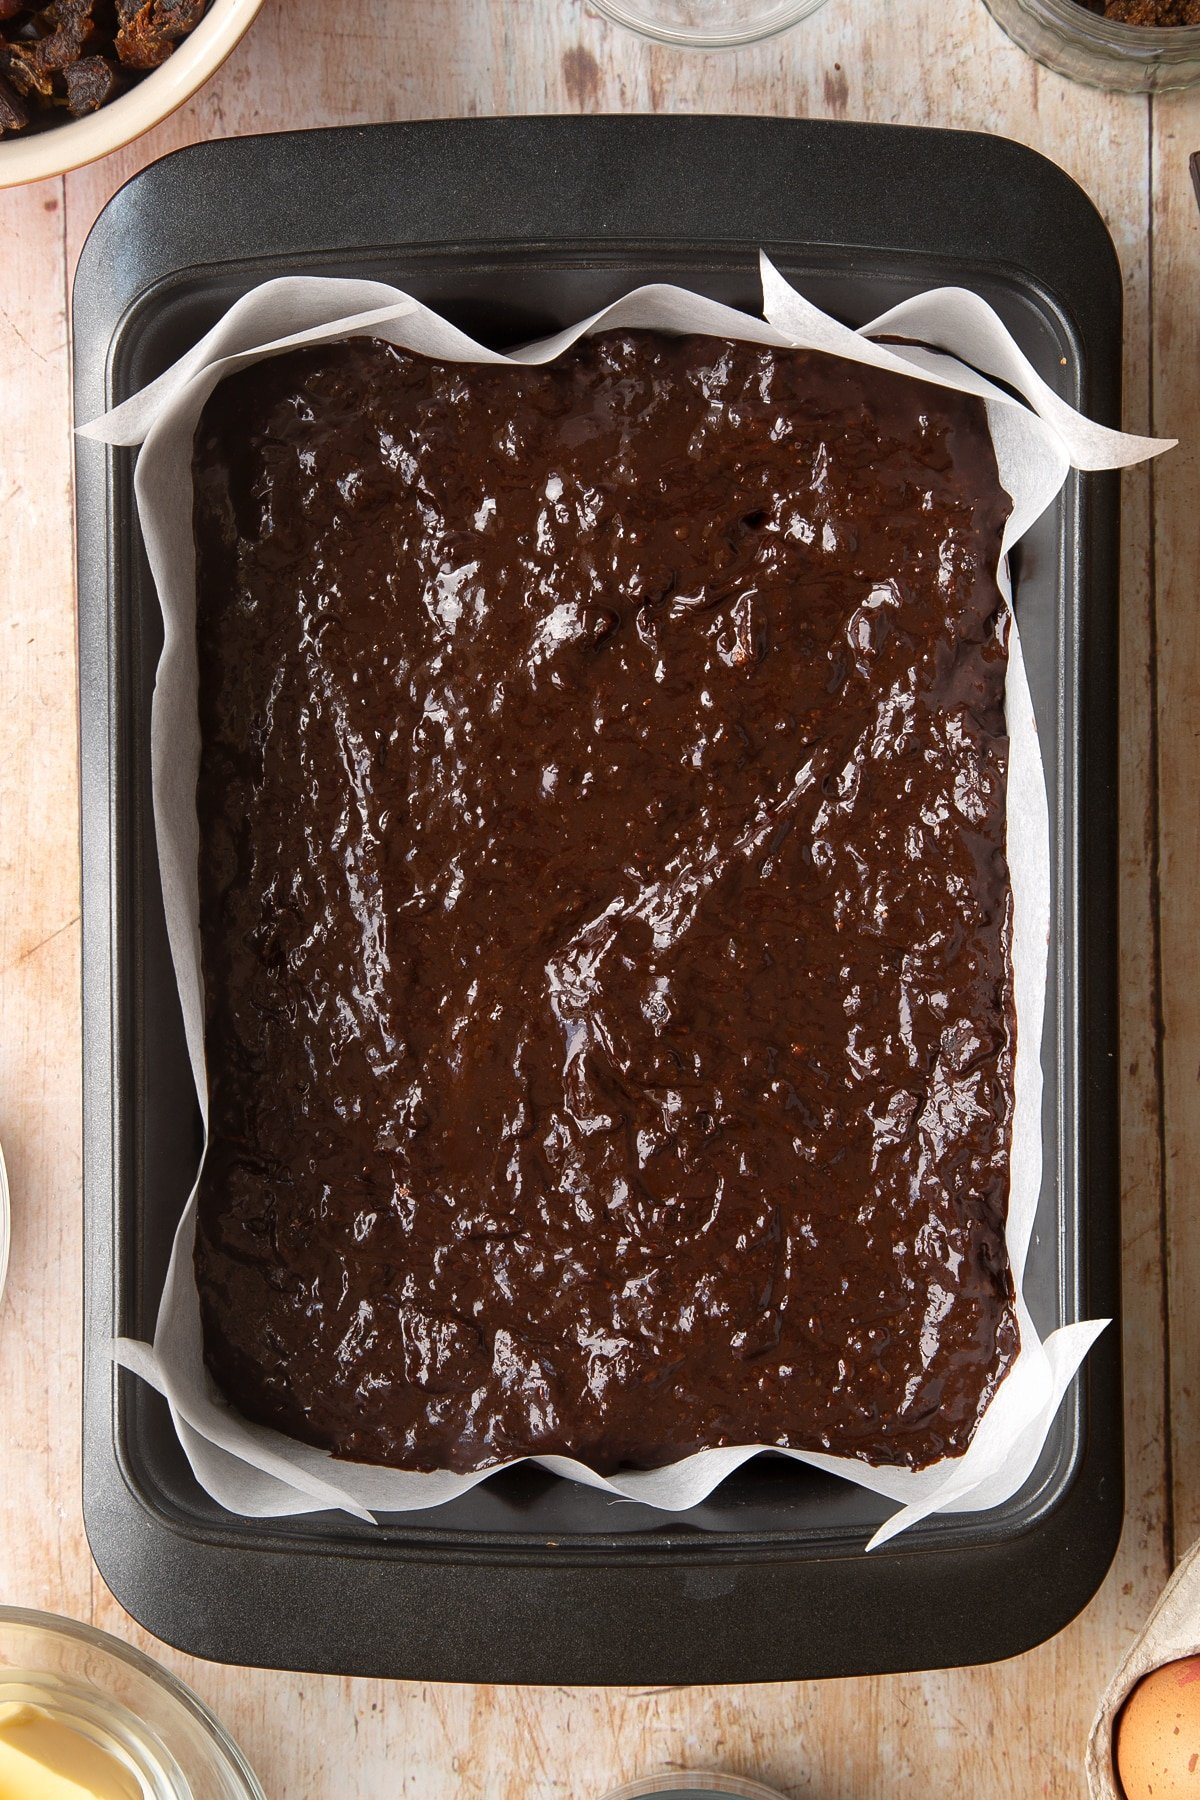 A rectangular tin lined with baking paper and filled with whole grain brownie batter. Ingredients to make whole grain brownies surround the tin.